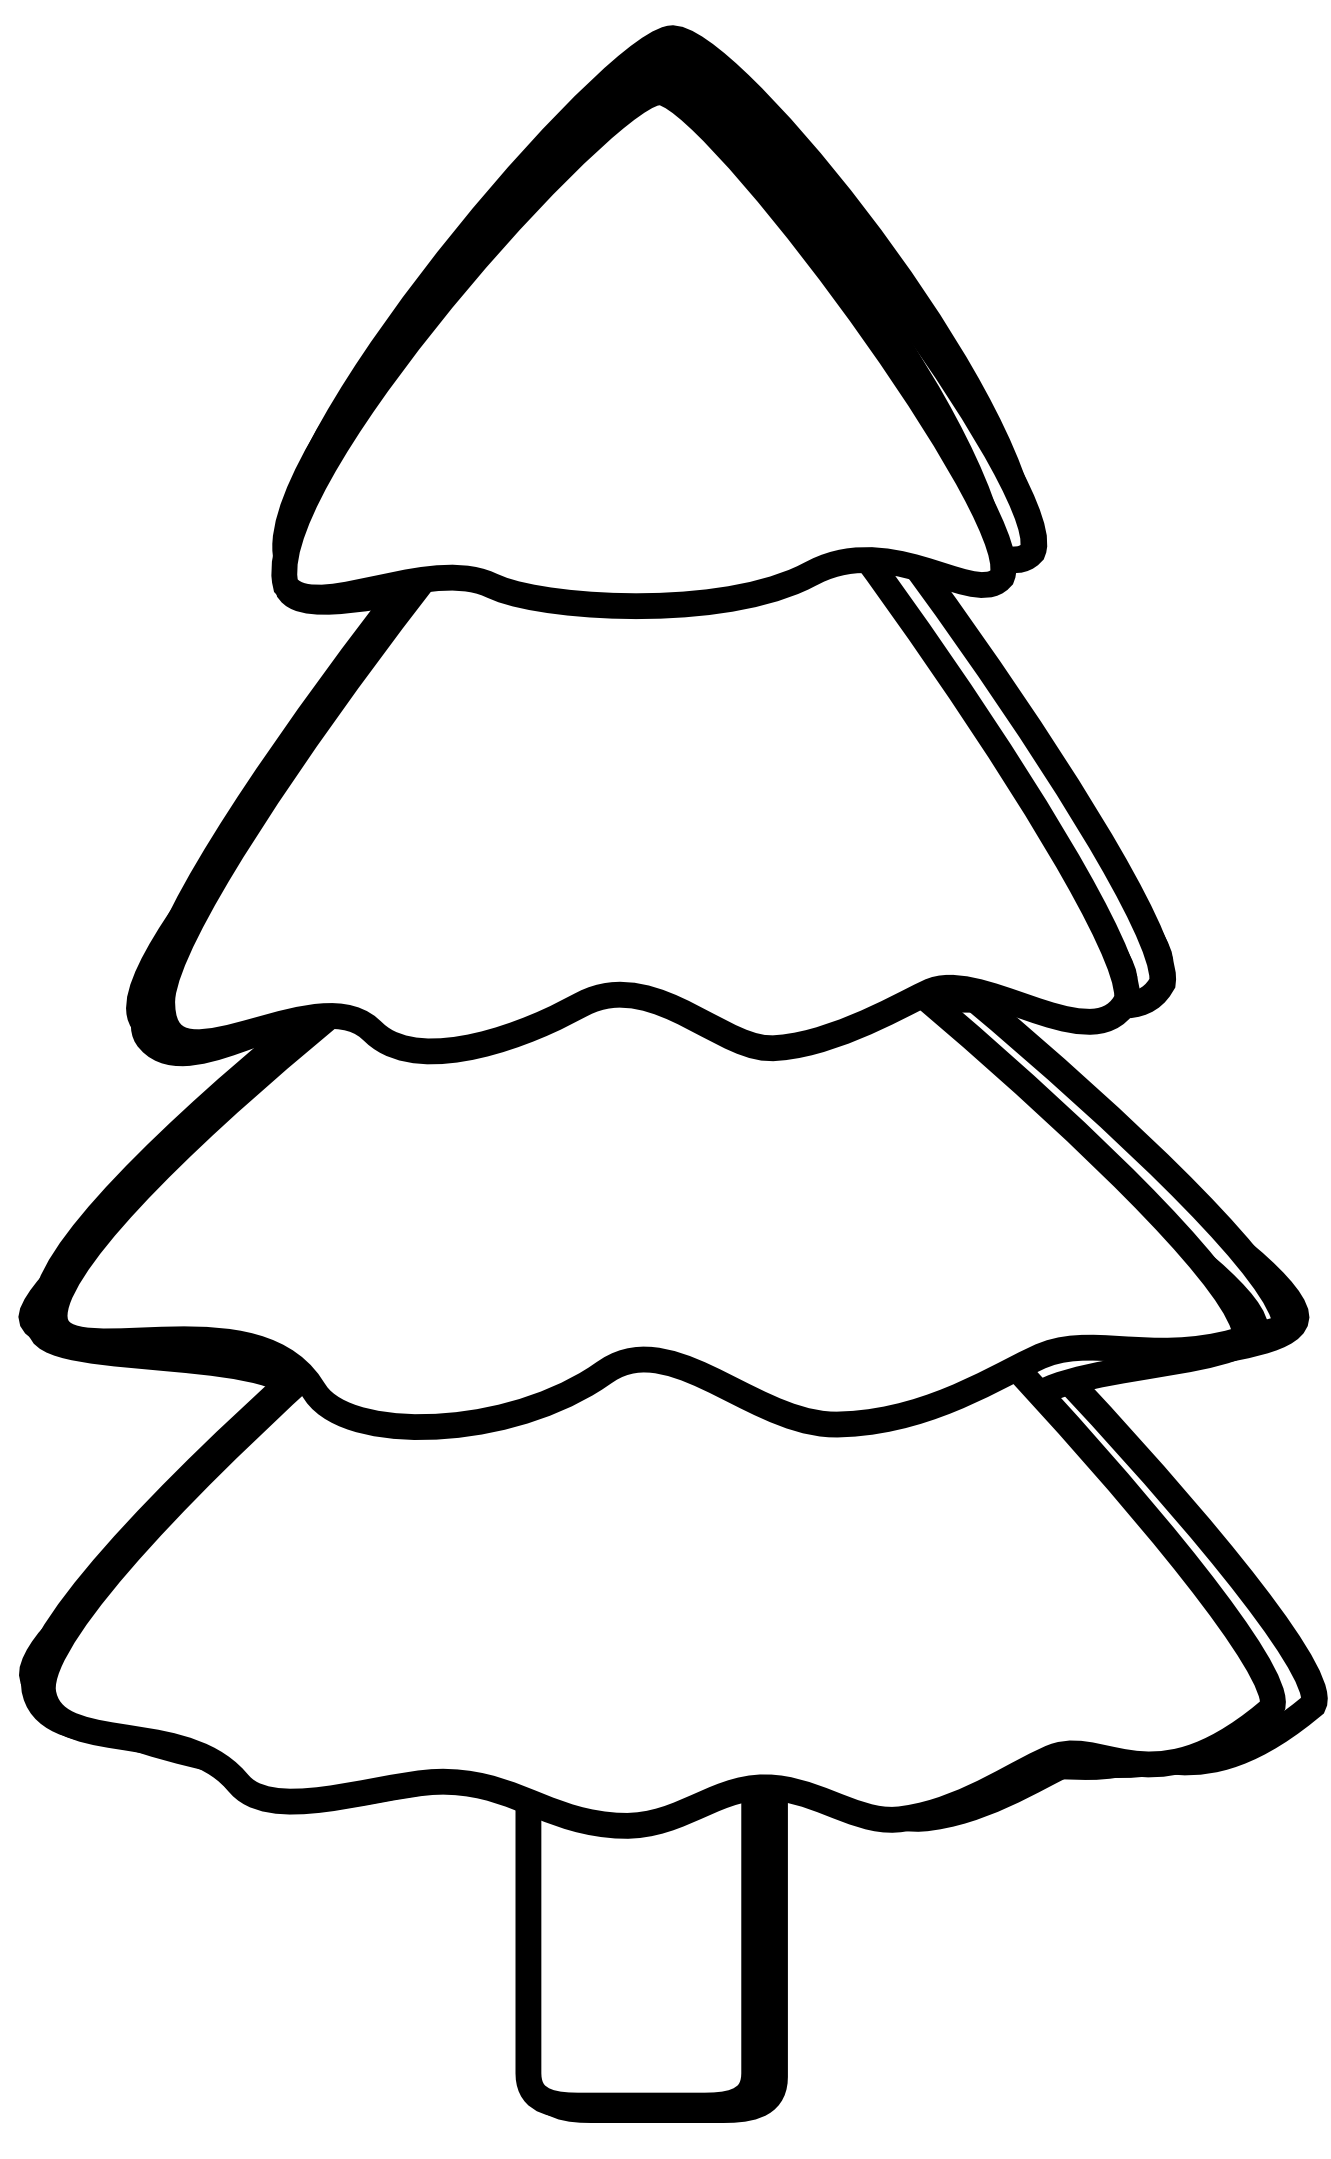 1331x2159 Christmas Black And White Clip Art Black And White Black White